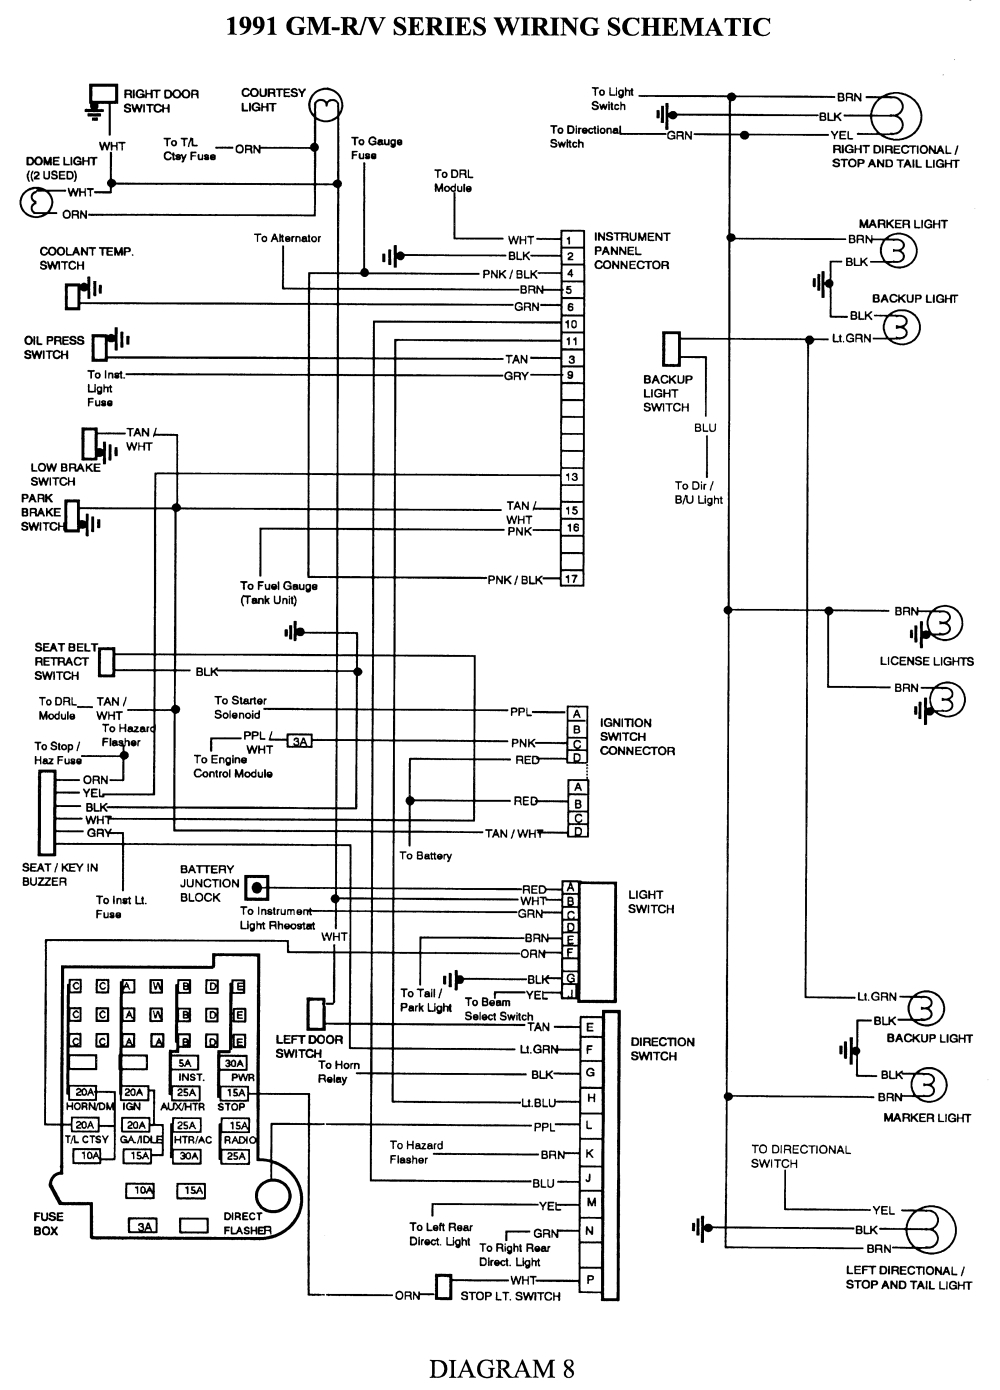 Chevrolet Wiring Diagrams - Wiring Diagrams Data global -  global.ilsoleovunque.it